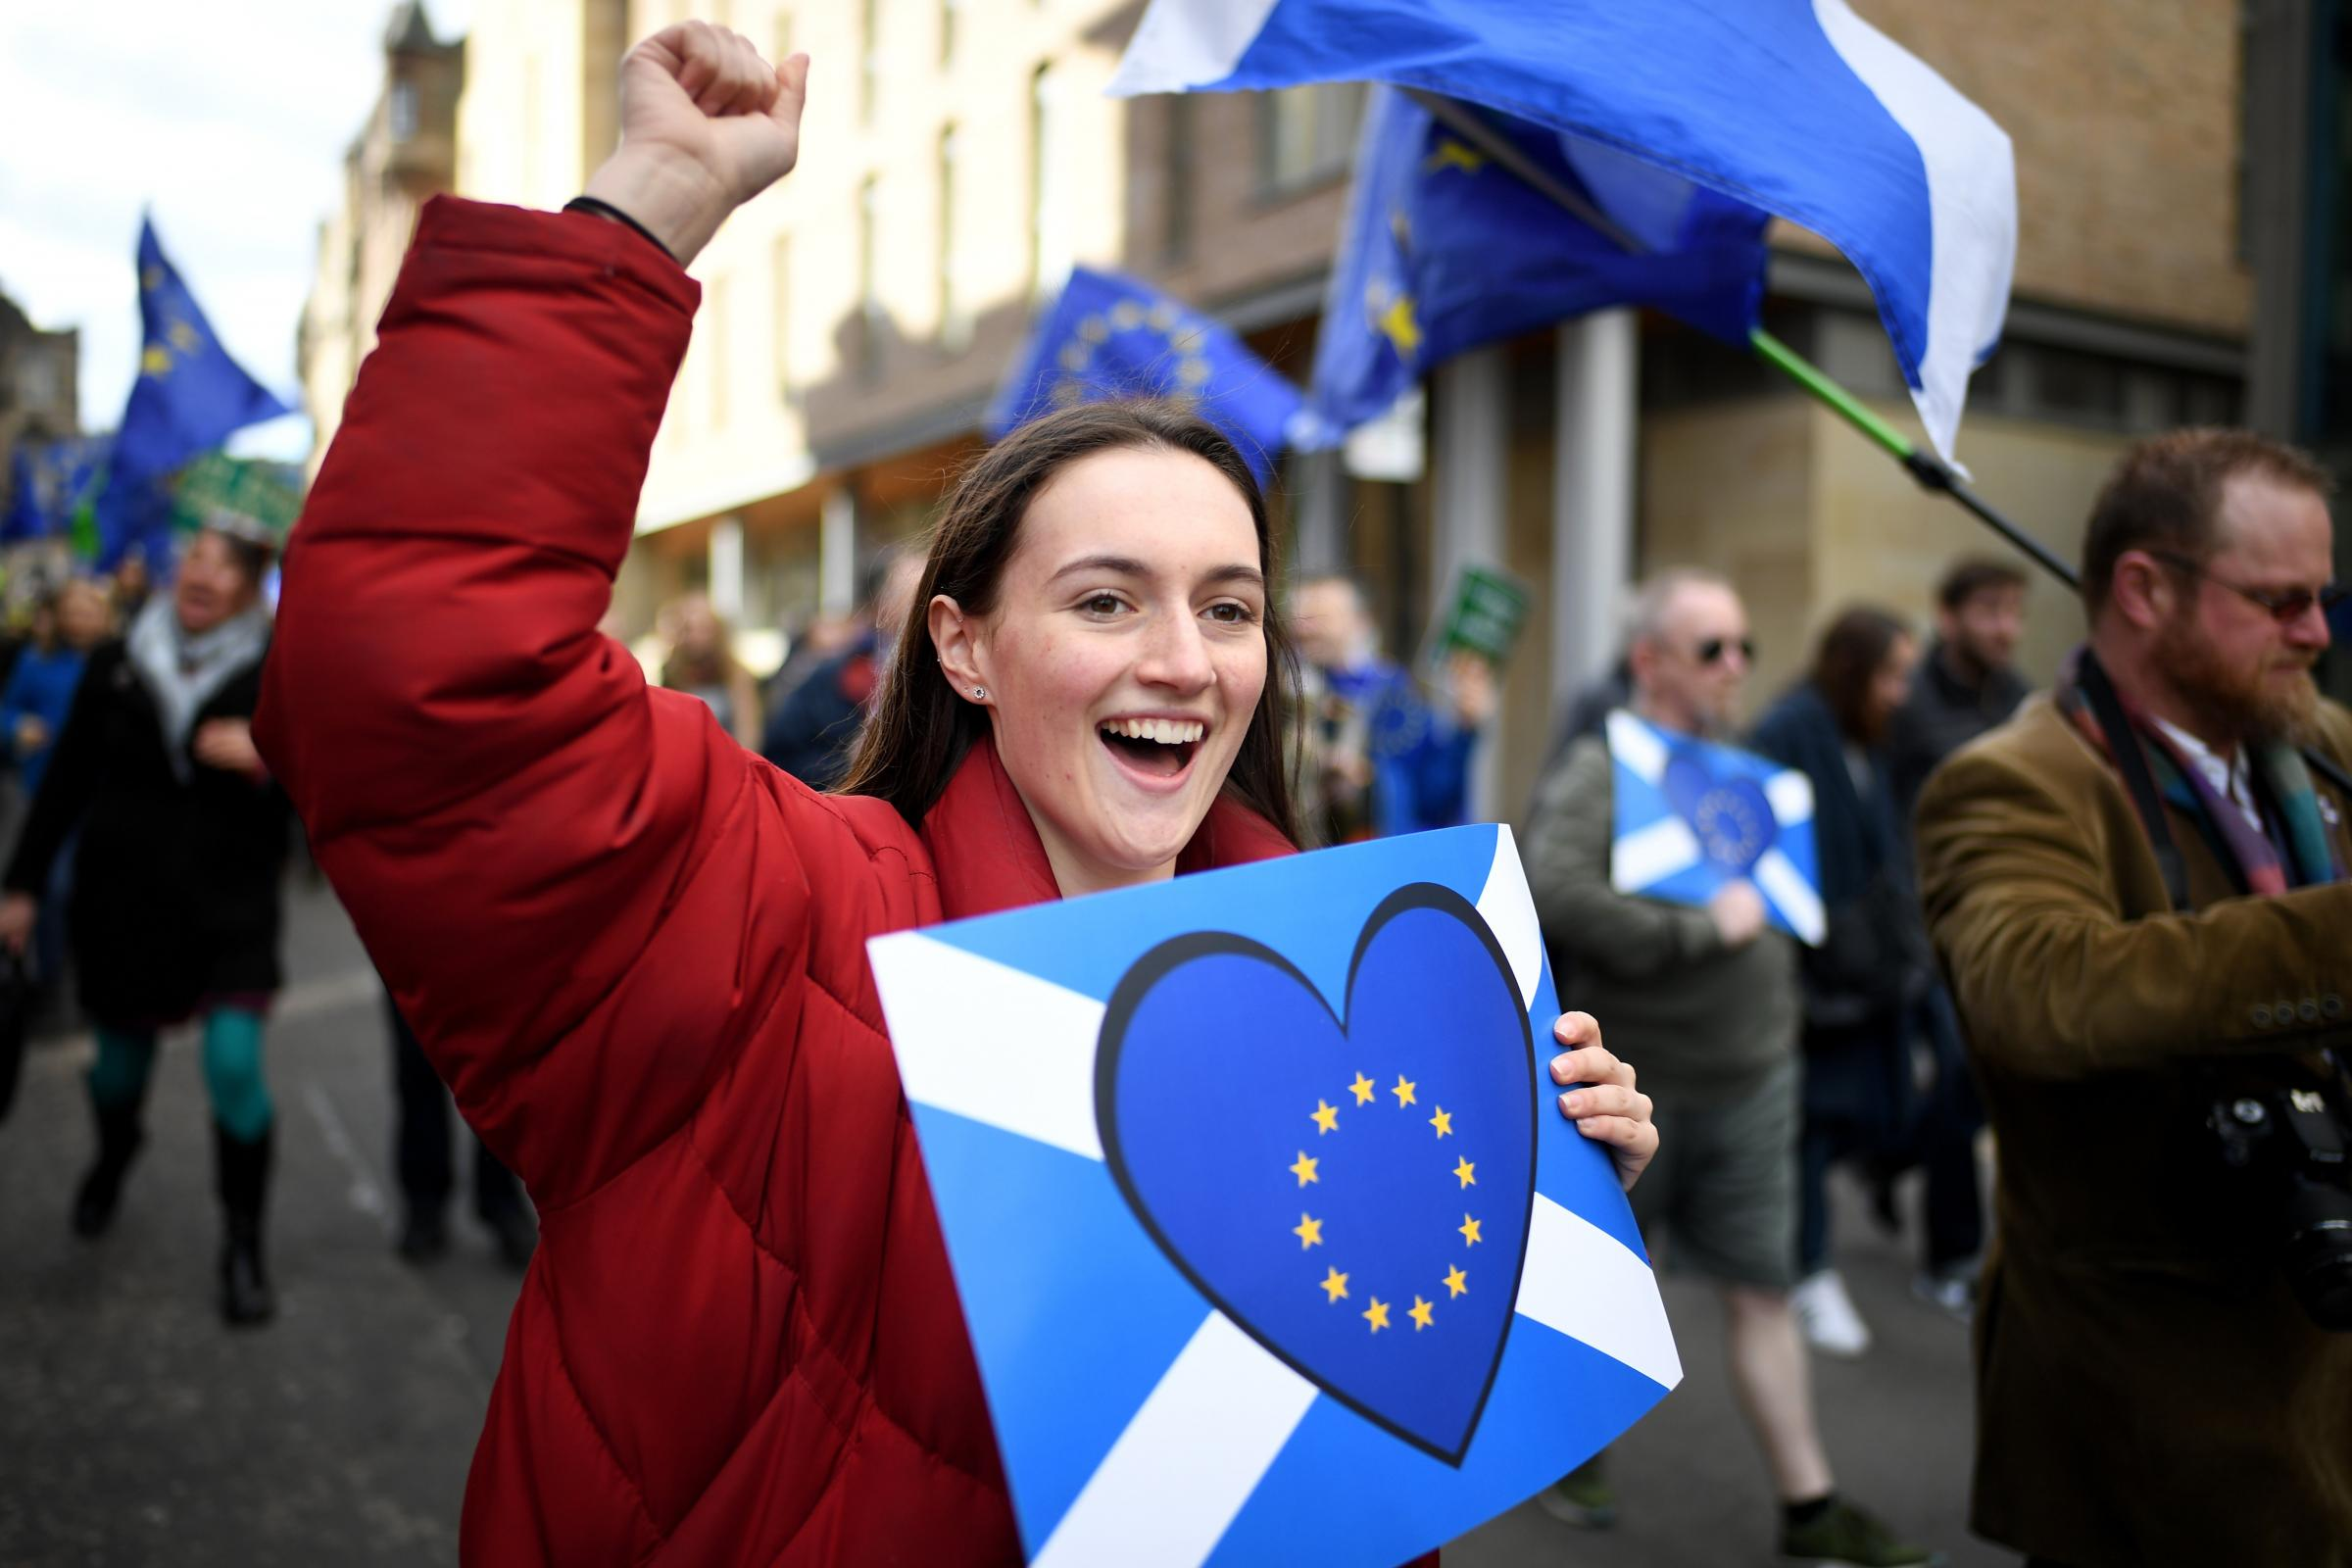 Scottish people voted overwhelmingly to remain in the EU